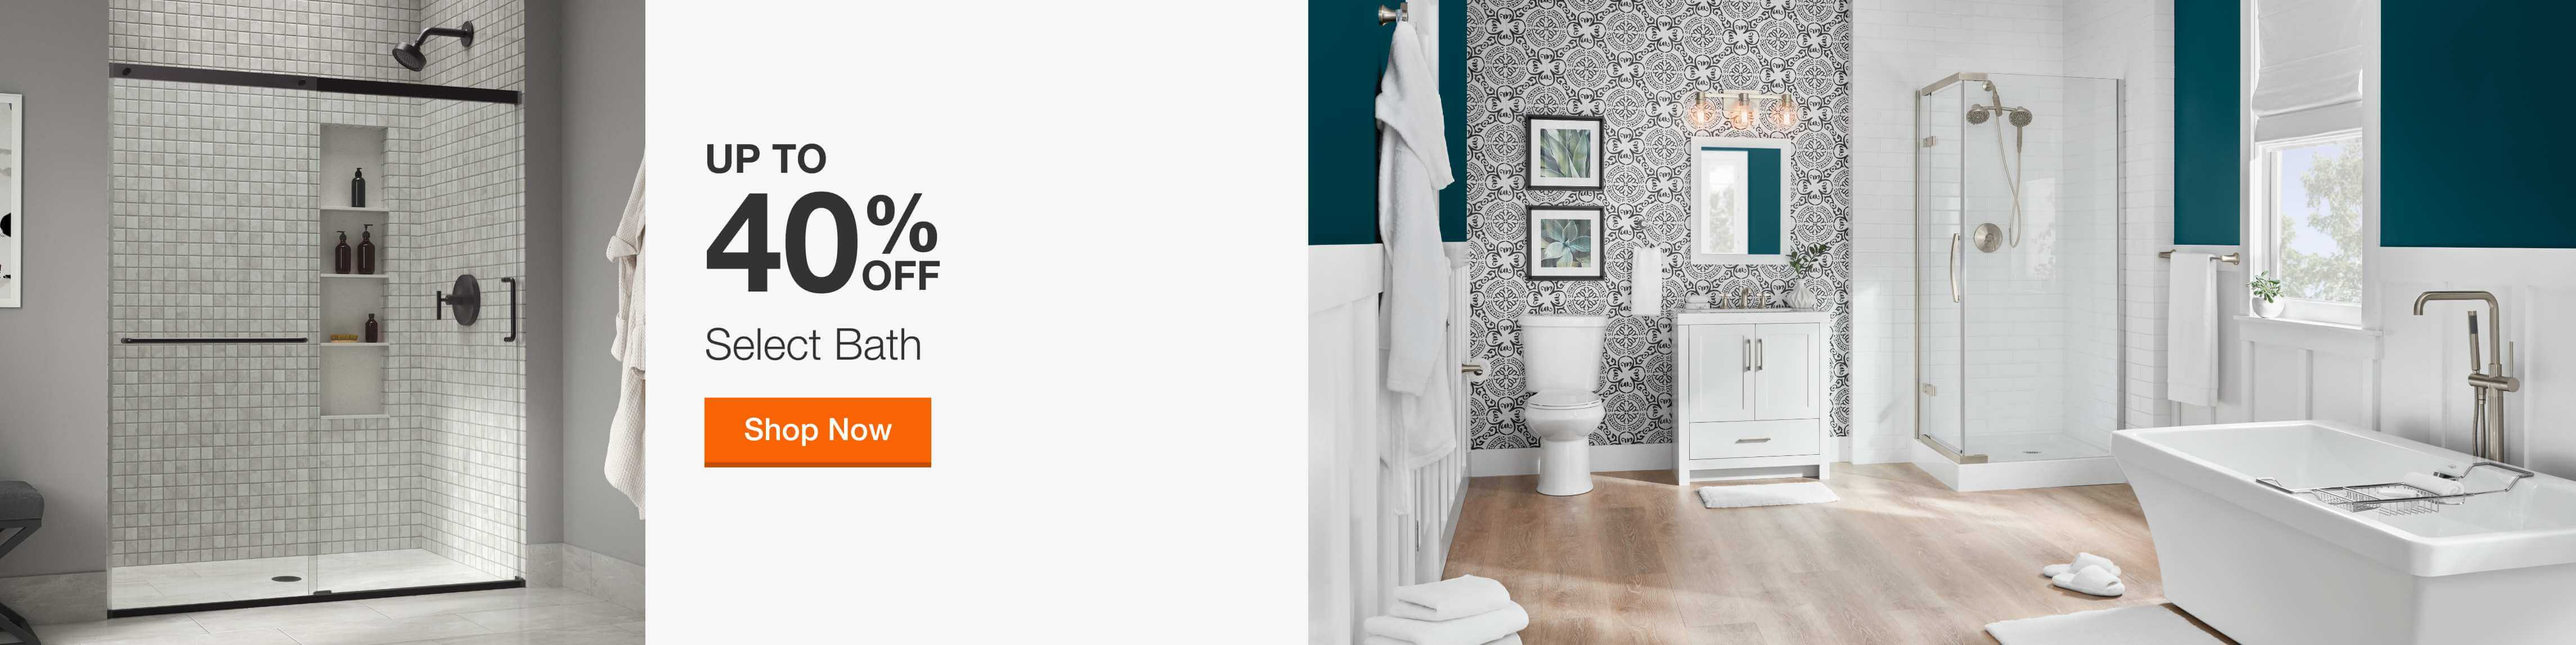 up to 40 percent off select bath shop now